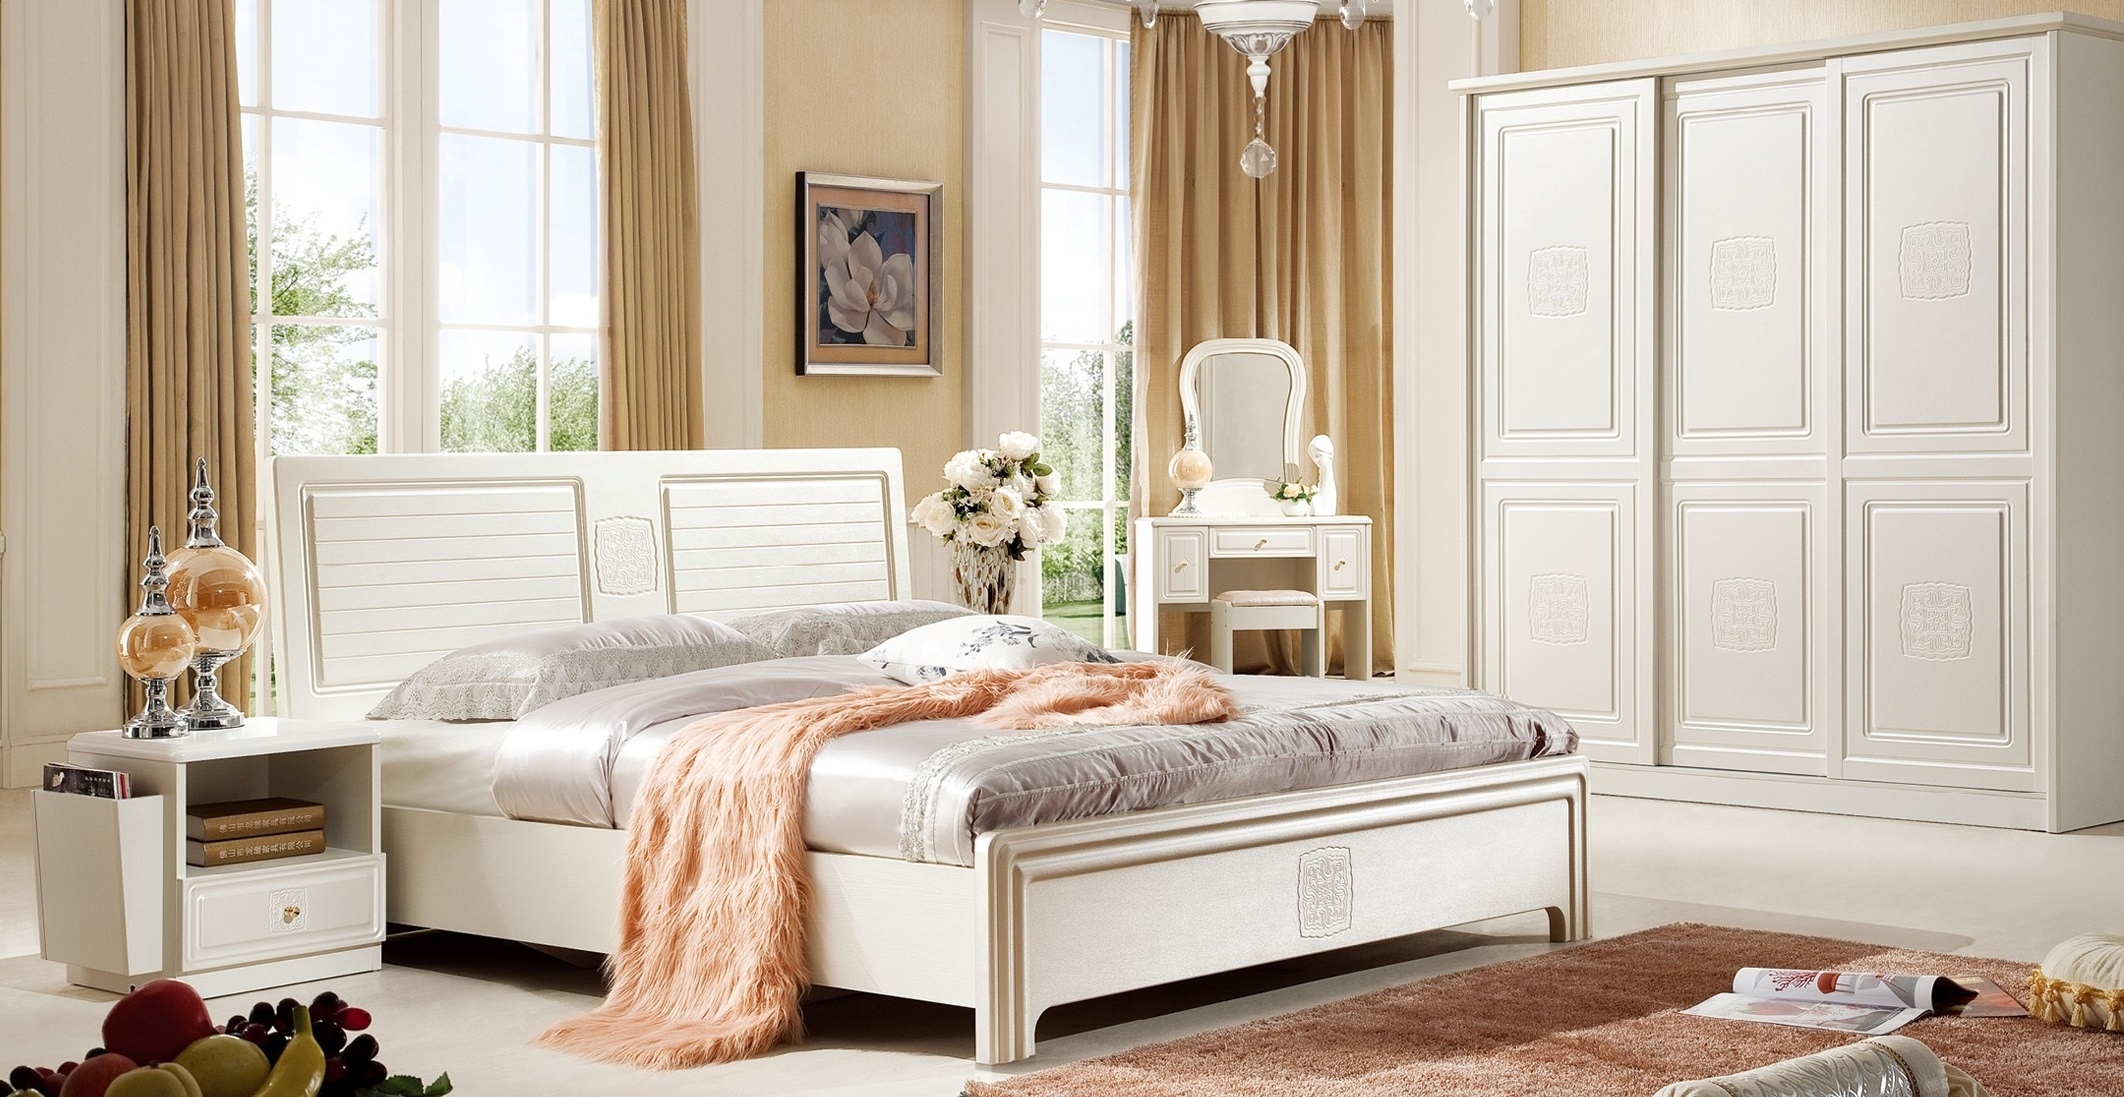 ELEGANCE-2 Home Set - 30.250.000 VND Bed- 1900*2100*1060 mm - 8.500.000 VND Wardrobe cabinet - 2000*600*2200 mm - 16.000.000 VND Dressing table - 1000*396*1540 mm - 3.600.000 VND Makeup chair - 430*330*390 mm -  650.000 VND Tab - 575*405*500 mm Price: 1.500.000 VND